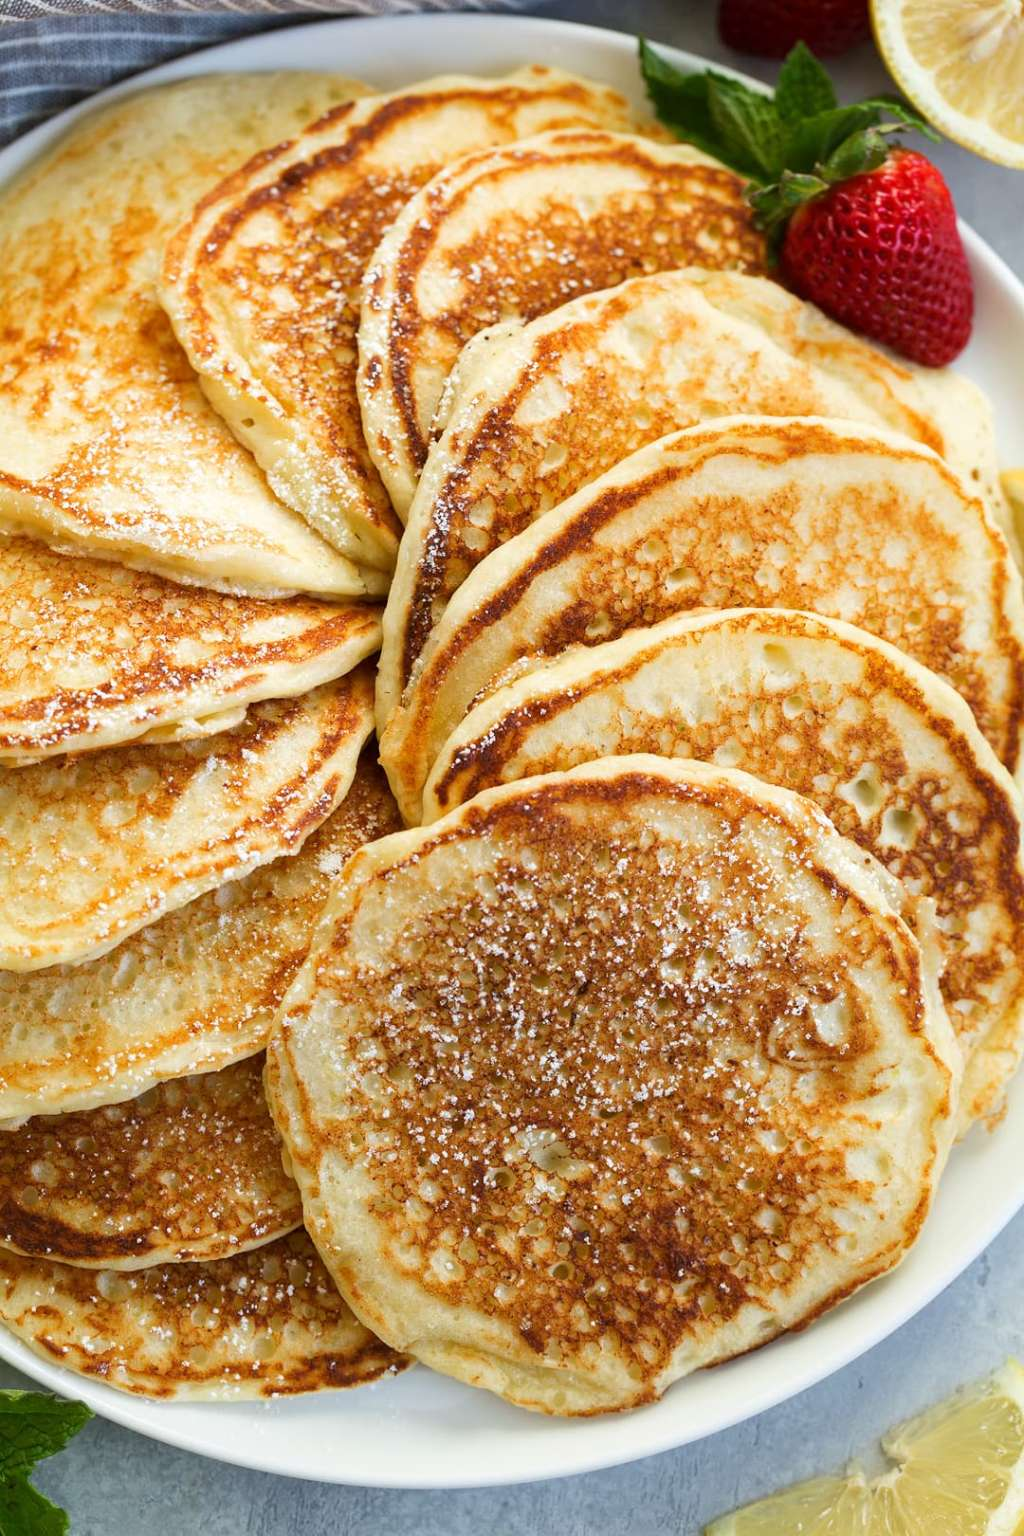 These Lemon Ricotta Pancakes Are Fit for a Royal Brunch